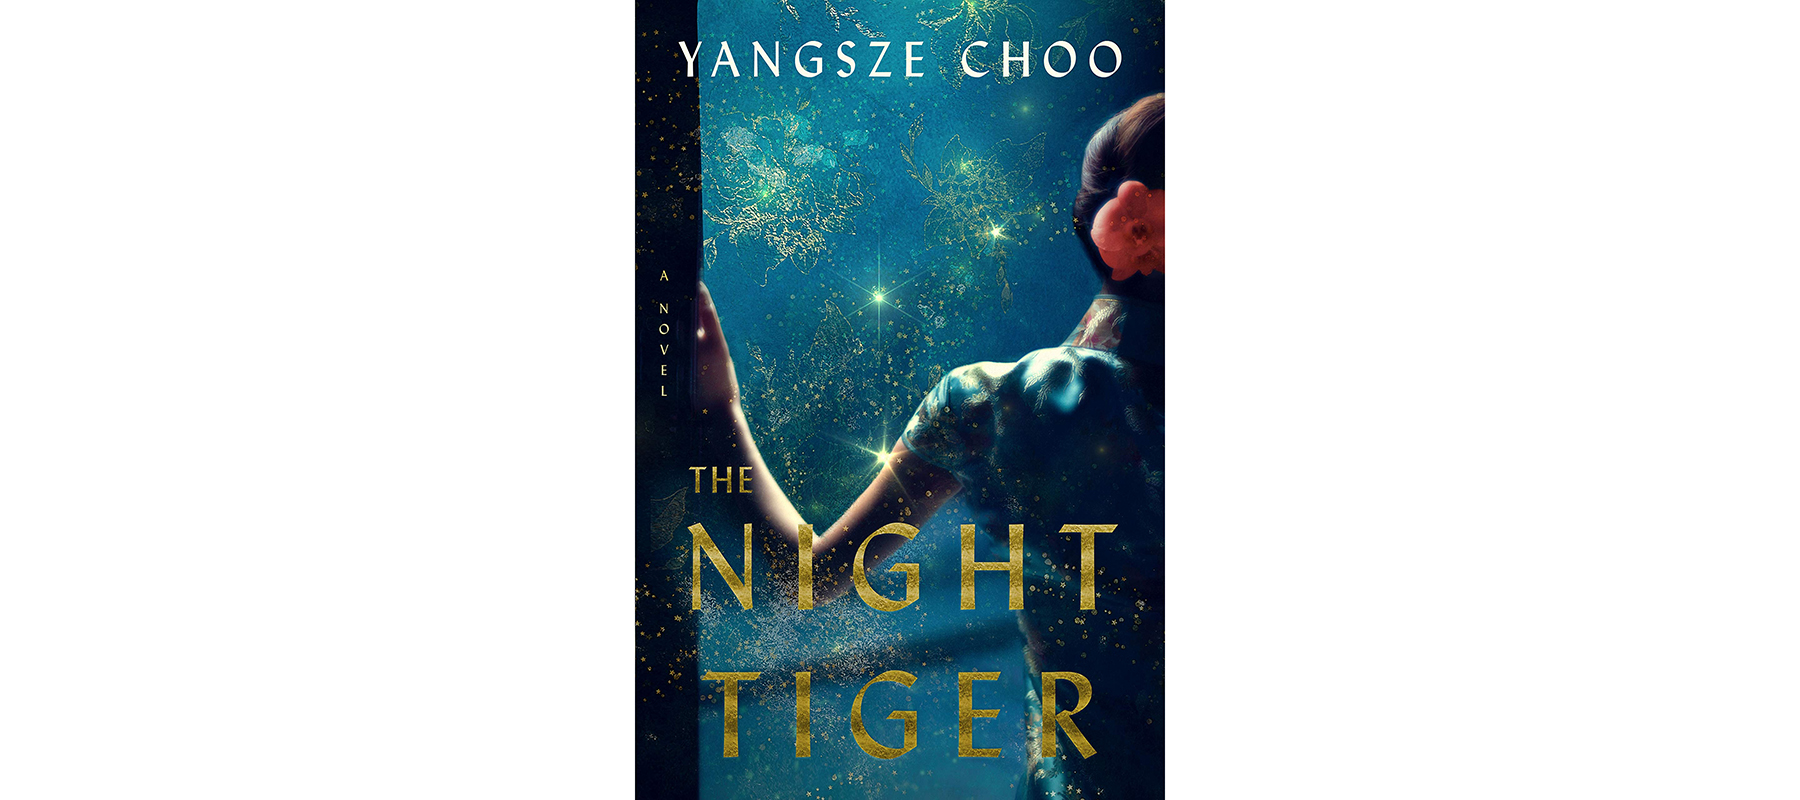 Cover of The Night Tiger, by Yangsze Choo